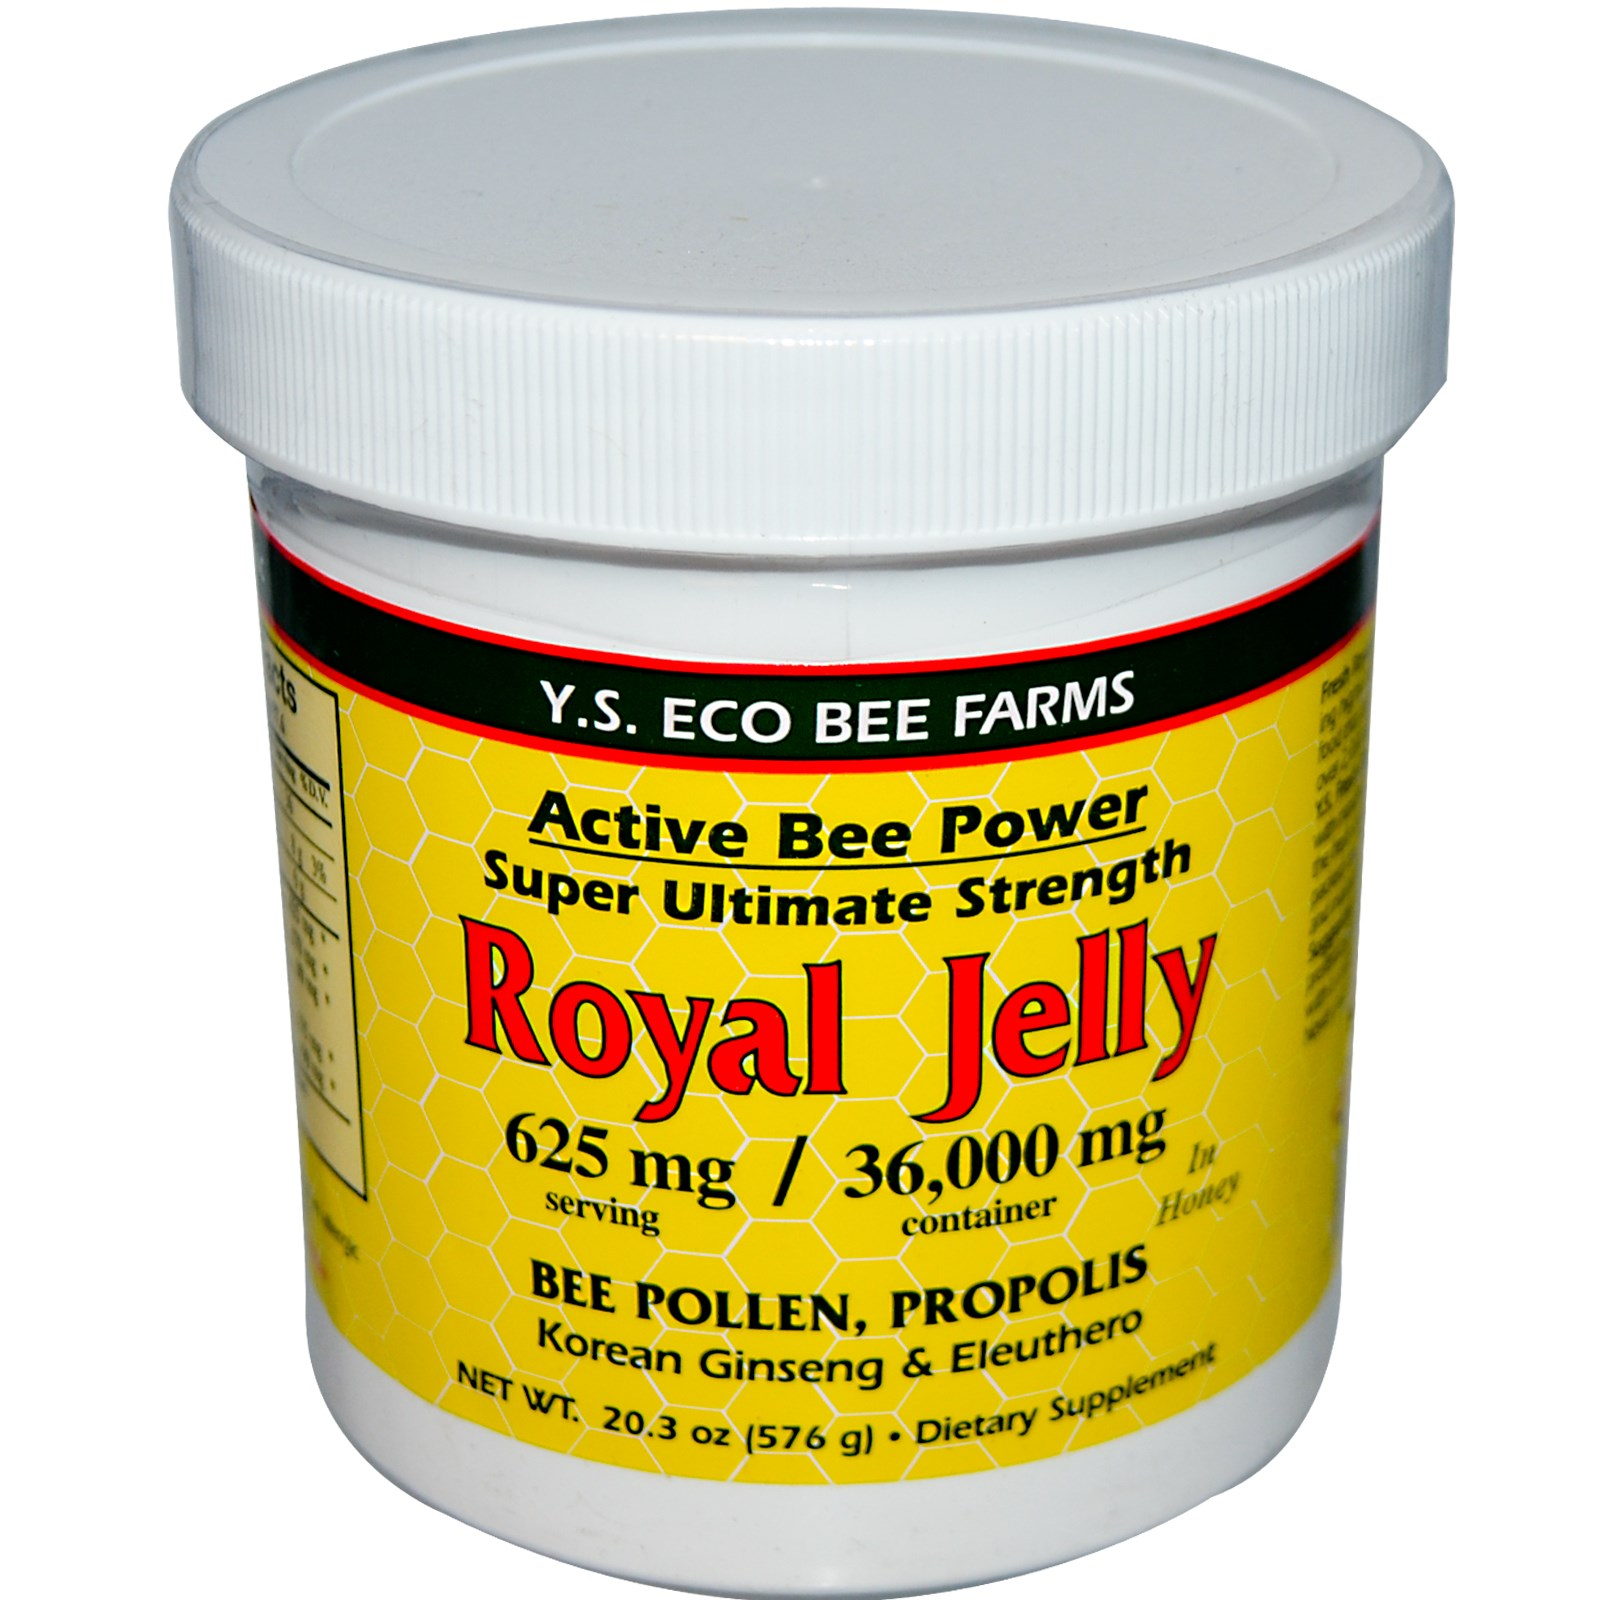 Y.S. Eco Bee Farms, Royal Jelly, 20.3 oz(pack of 6)